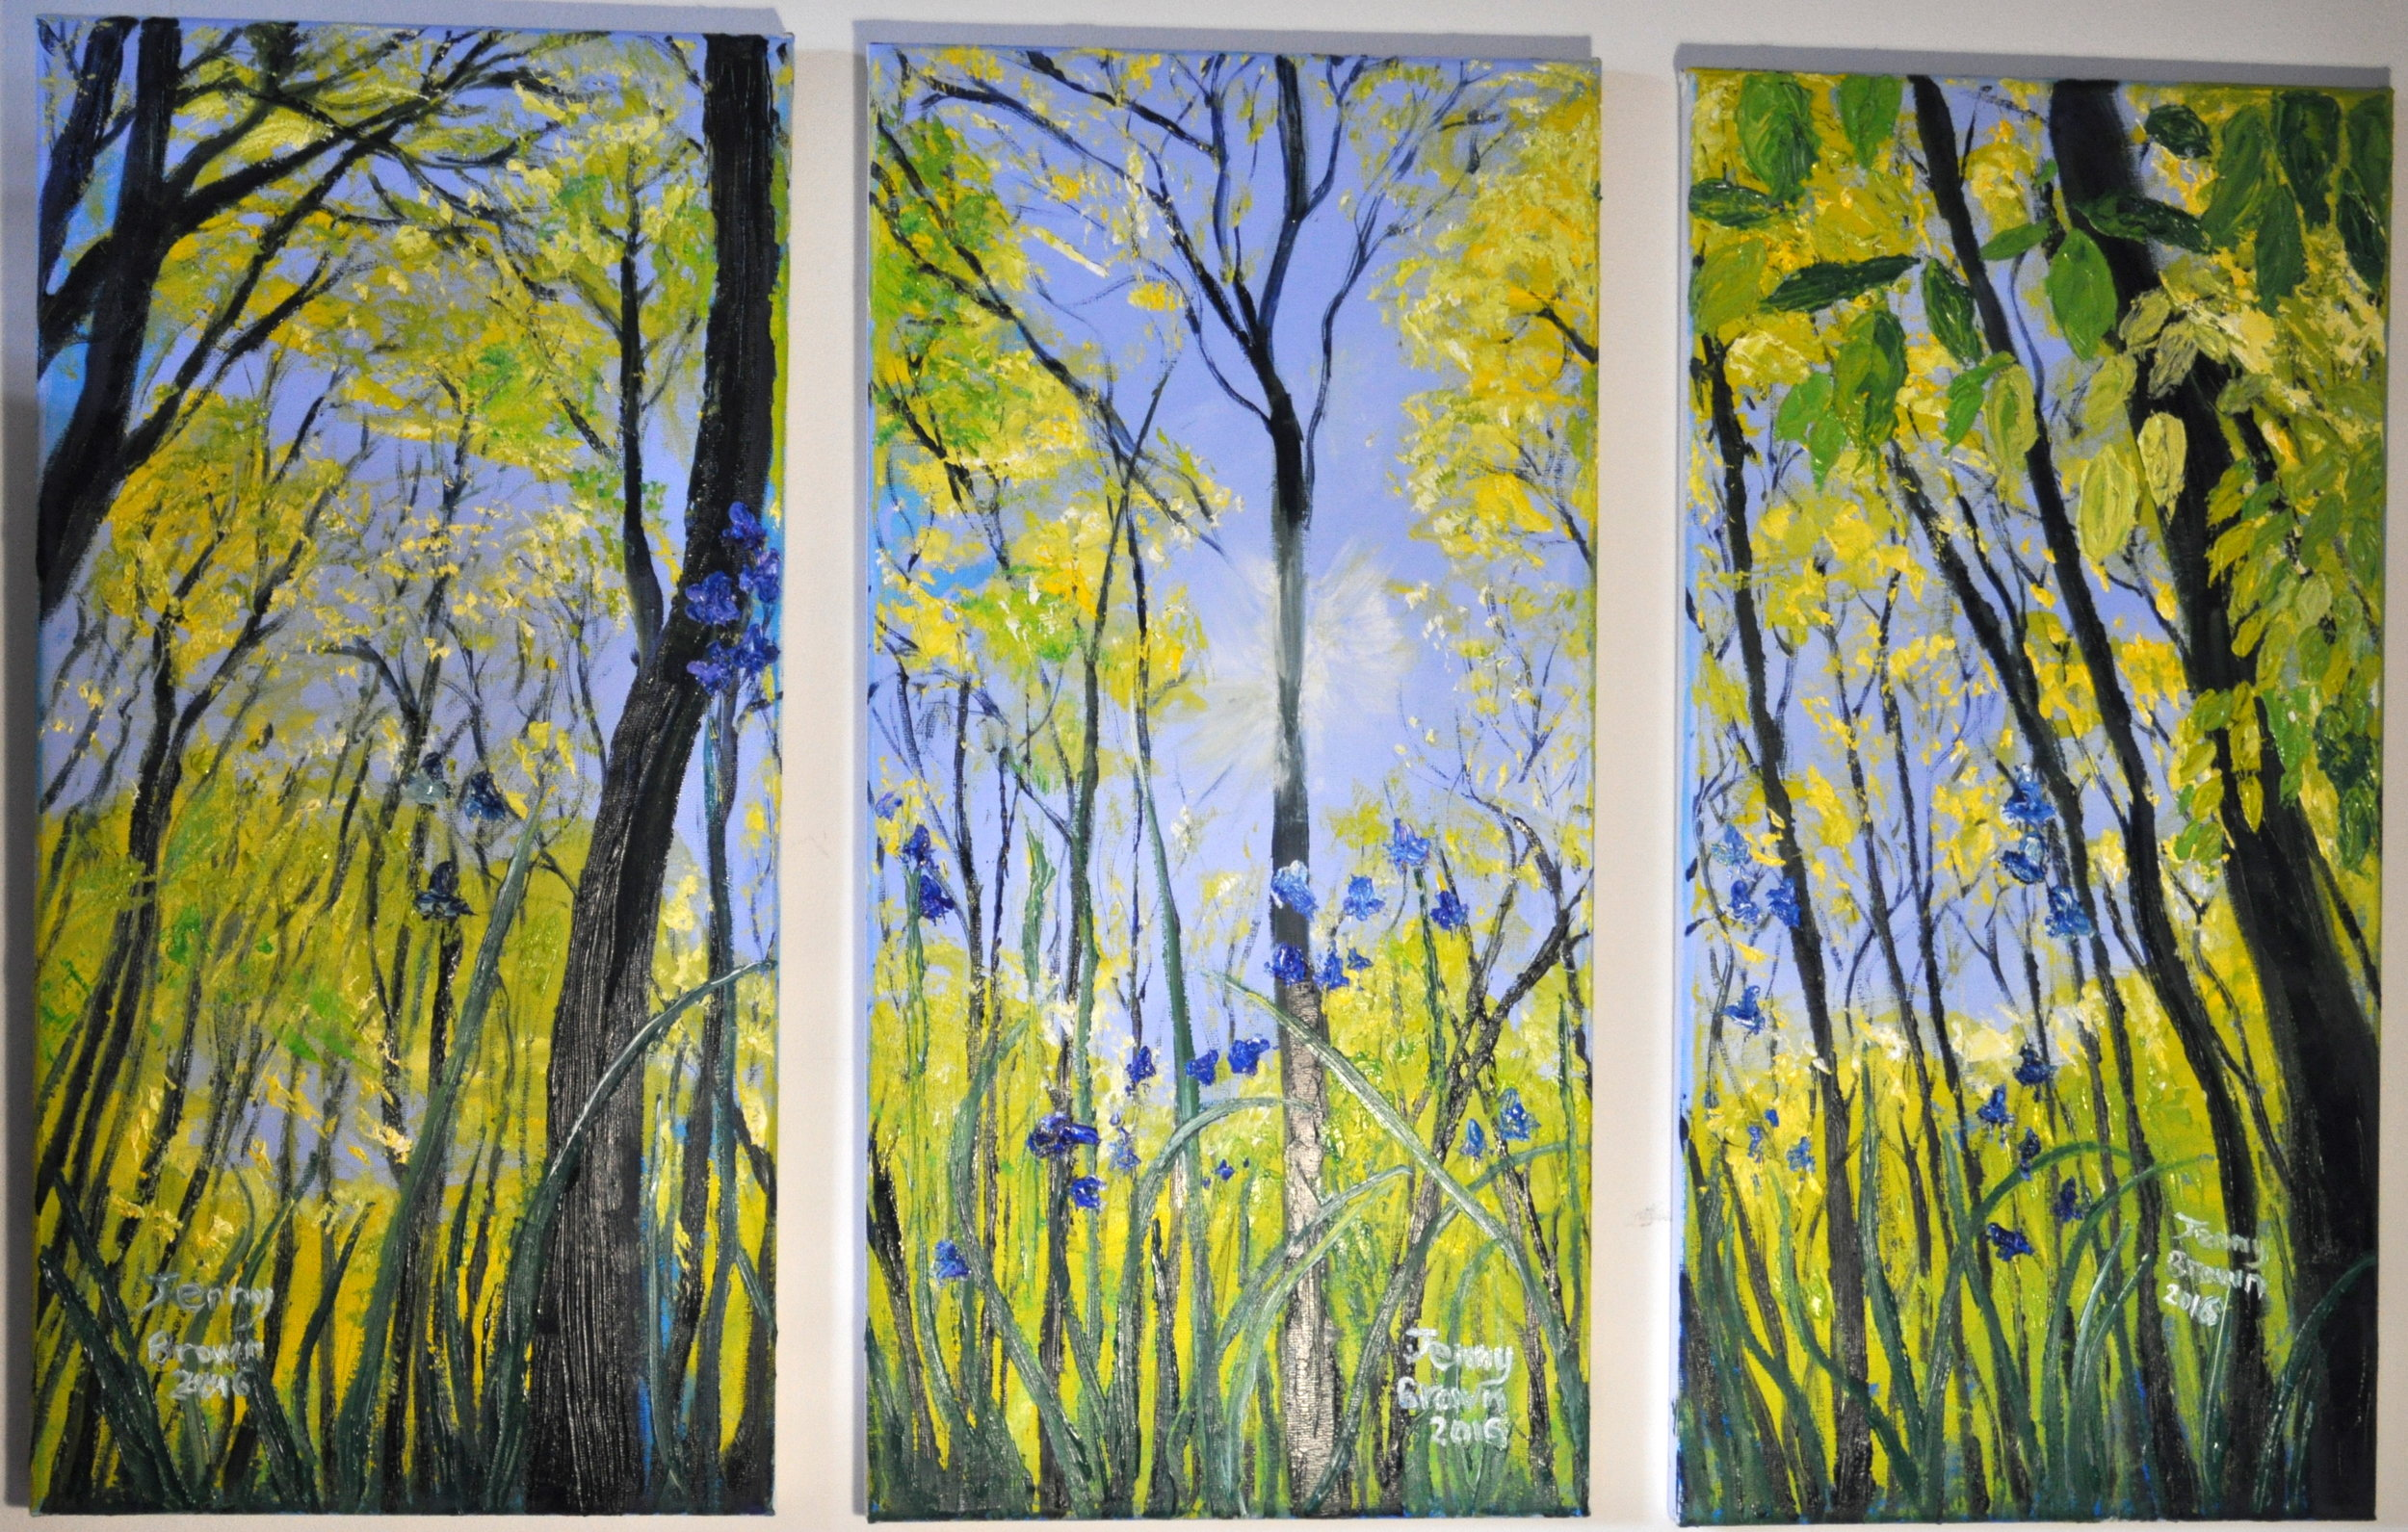 Woods in Spring Tryptch25x50cm Oil on 3 CanvasesSOLD